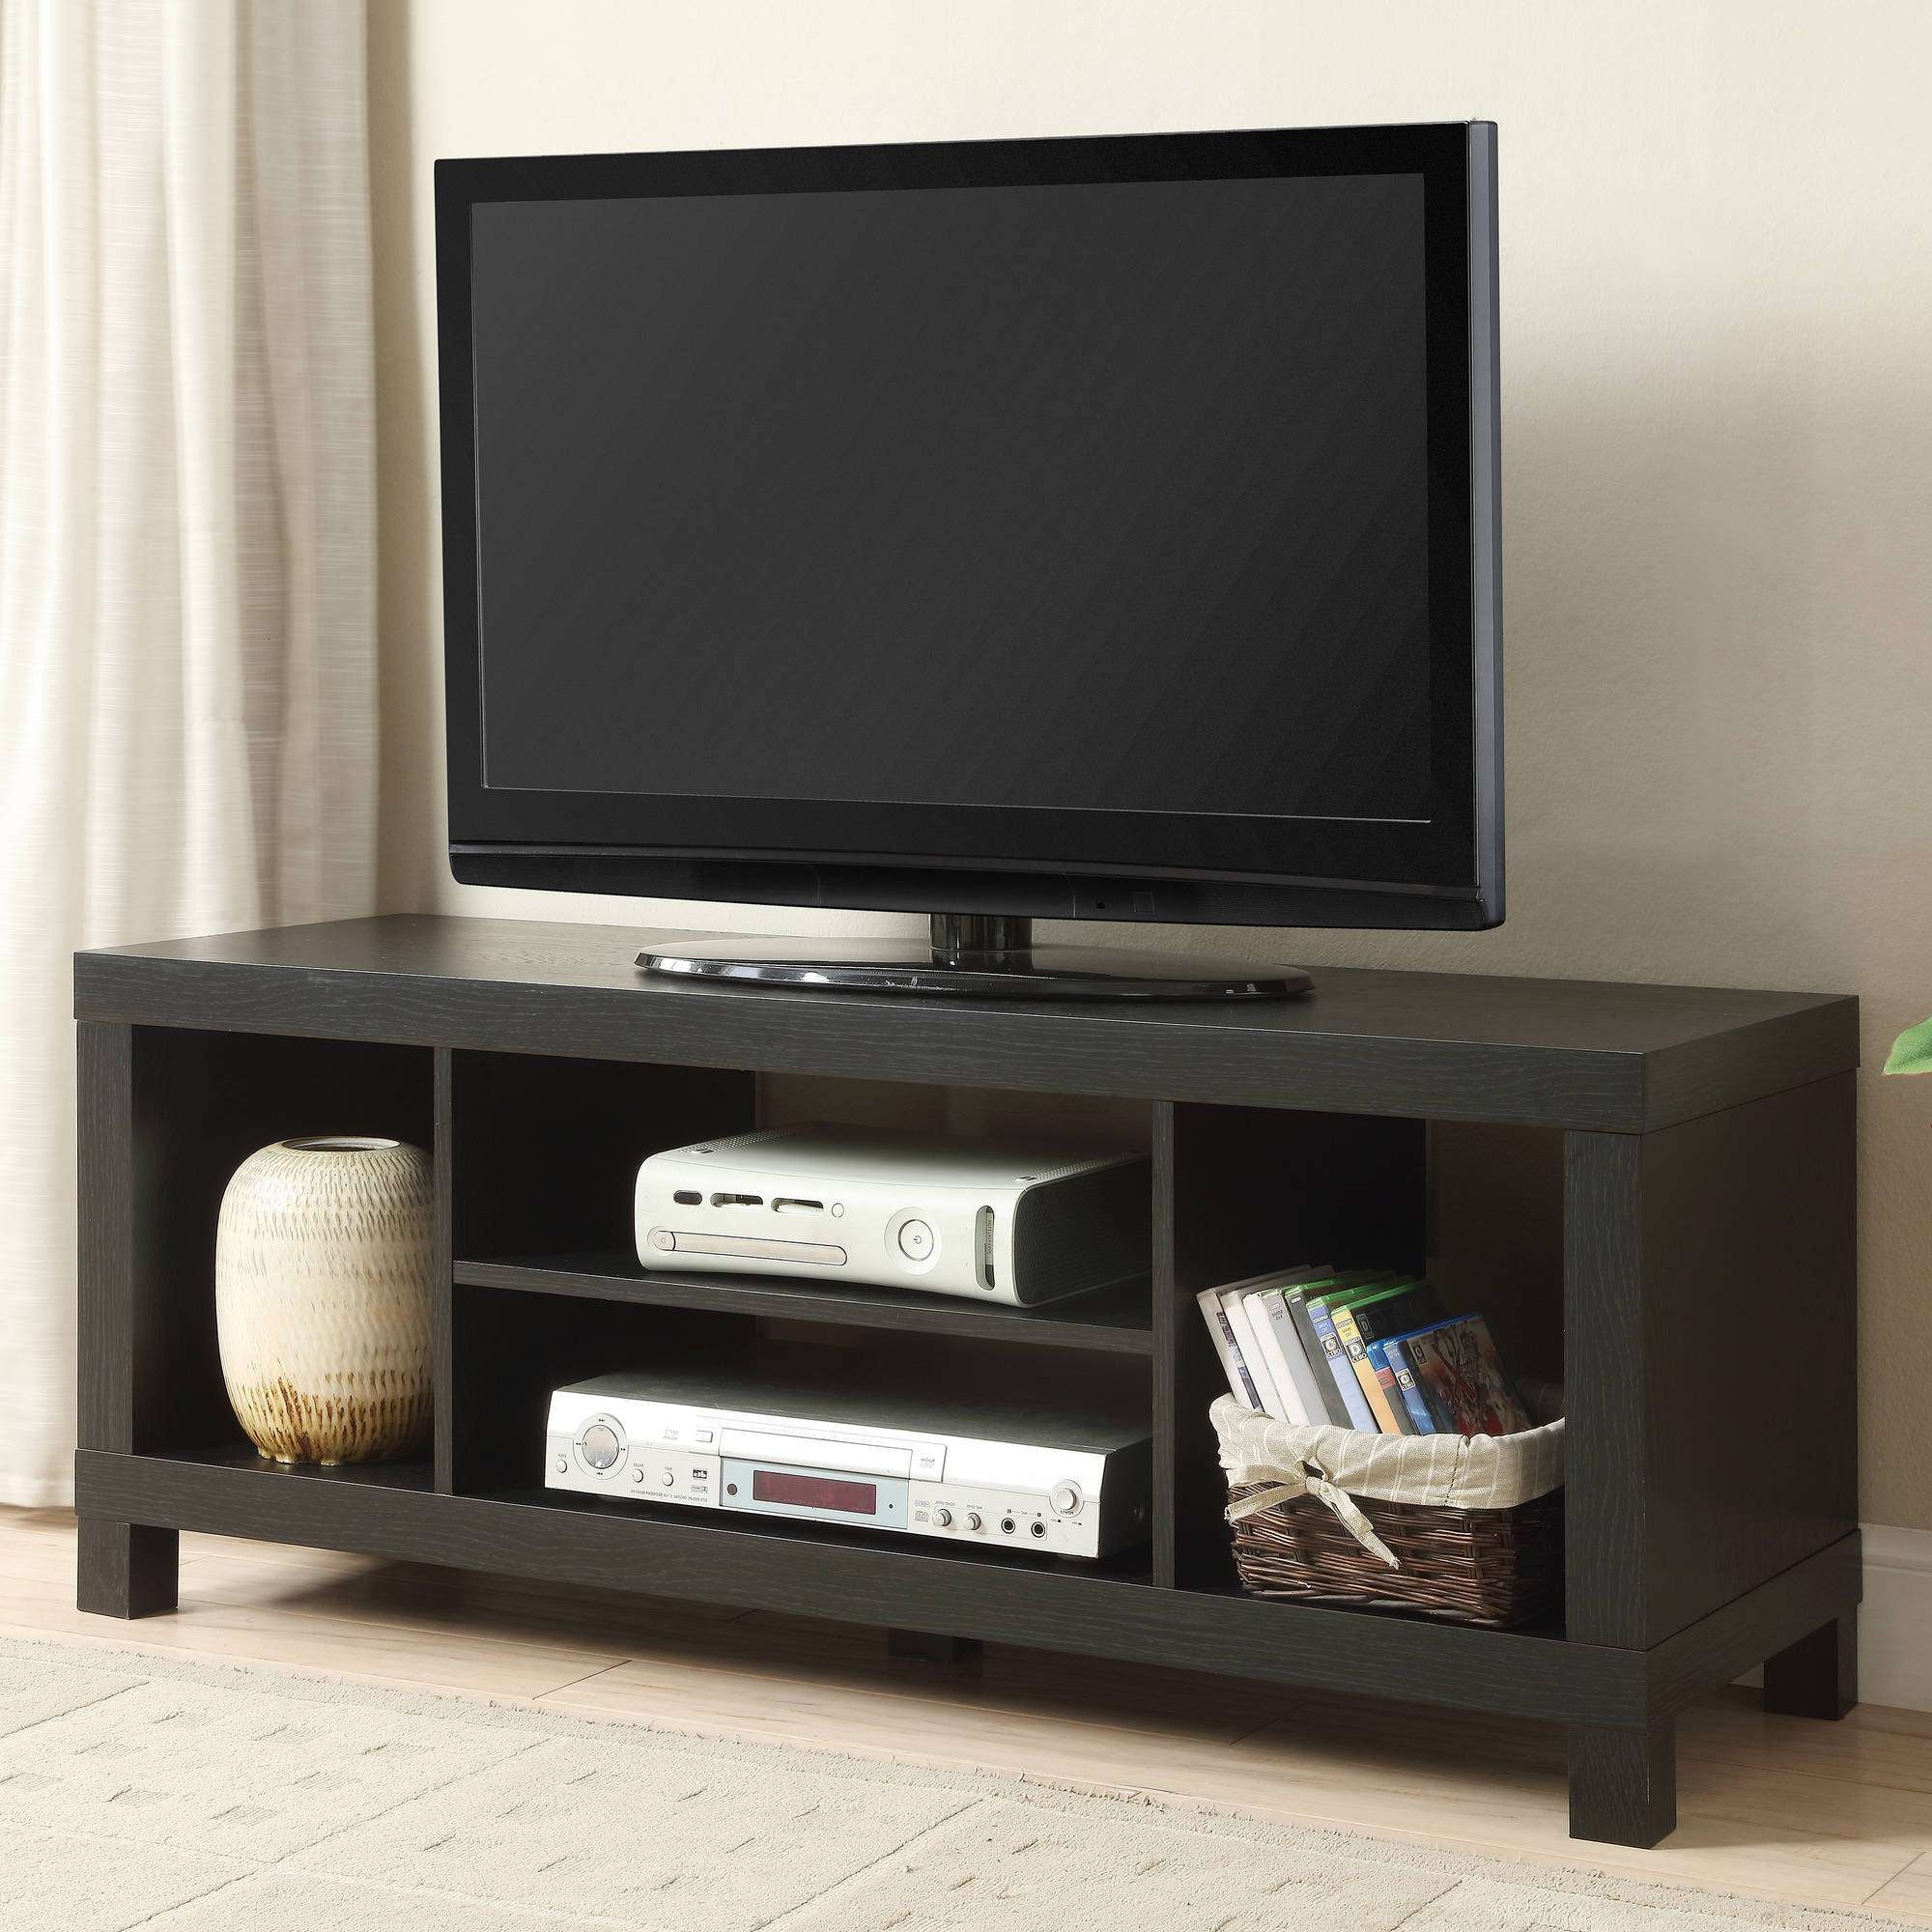 Tv Stands – Walmart Intended For Tv Stands For 55 Inch Tv (View 13 of 15)